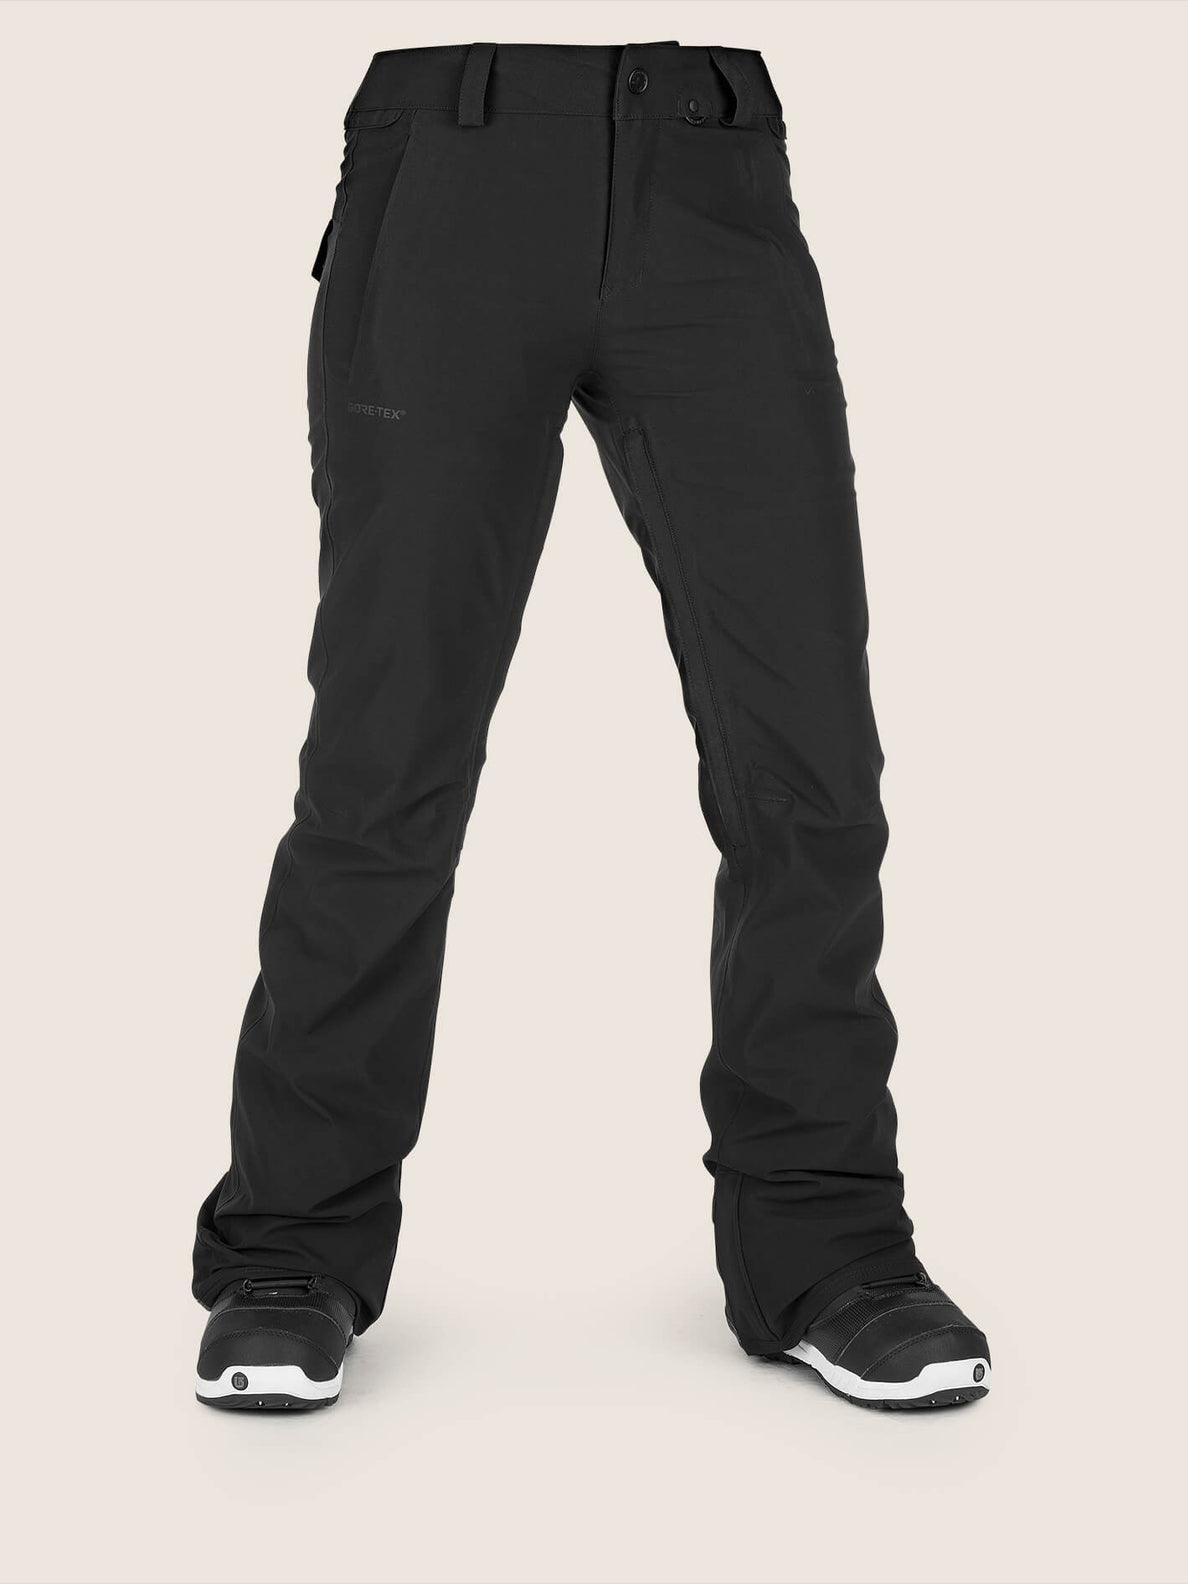 Flor Stretch Gore-tex Pant In Black, Front View